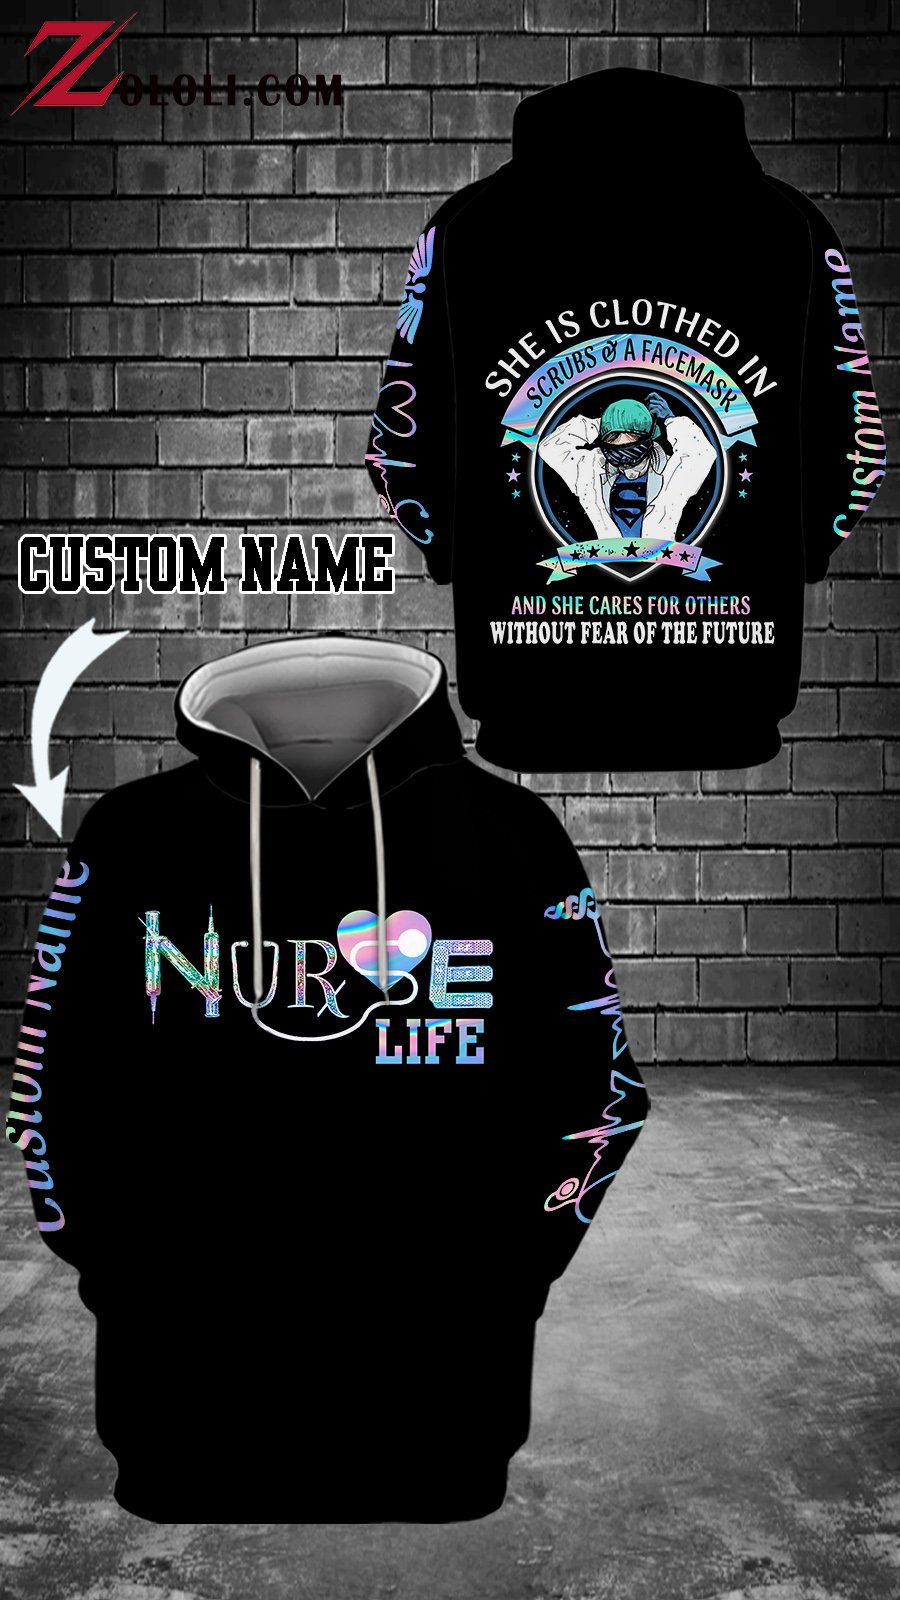 Personalized Nurse life She is clothed in scrubs and a face mask 3D hoodies